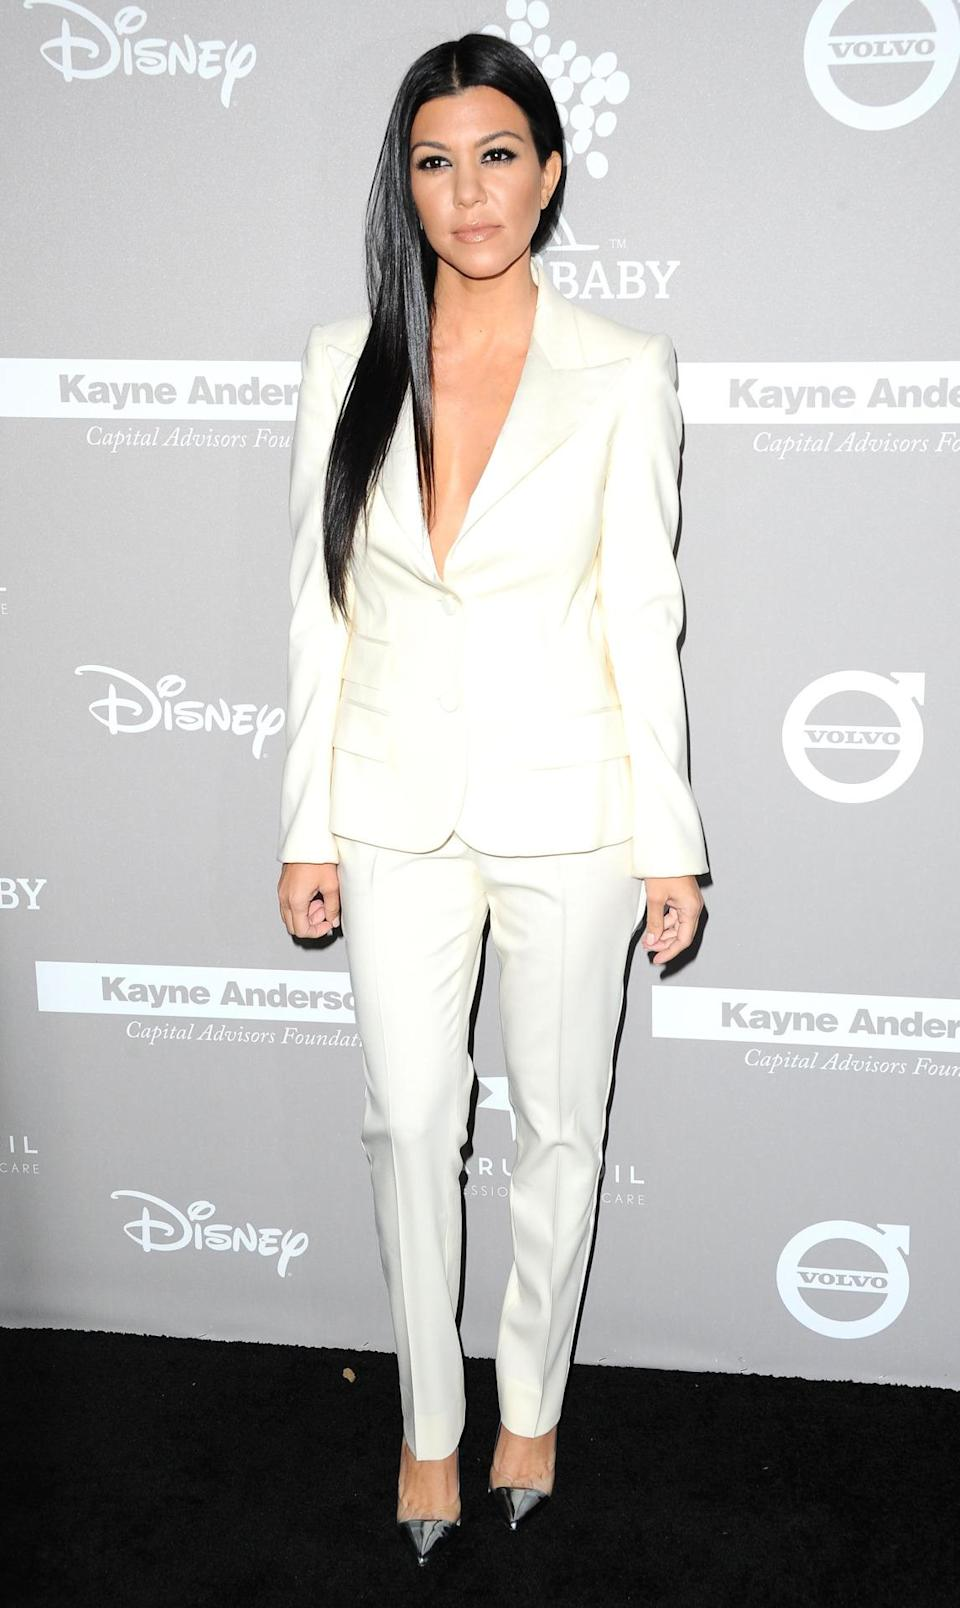 Kourtney Kardashian wowed in another tailored suit. The mum-of-three donned an all-white Dolce & Gabbana look for the occasion, paired with metallic heels. [Photo: Rex]